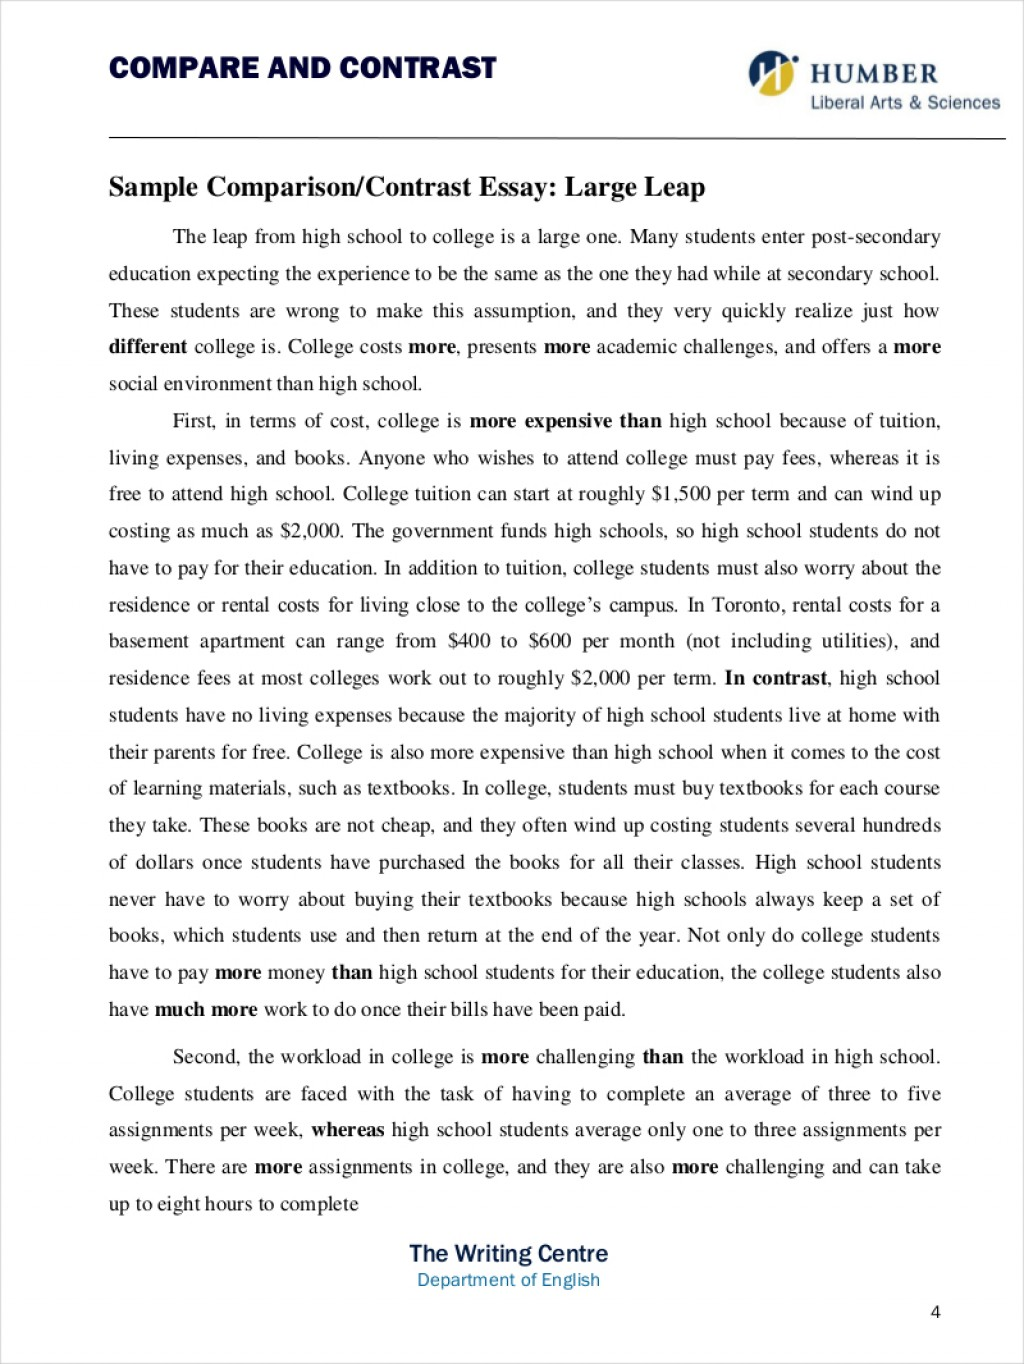 009 Comparison And Contrast Essay Comparative Samples Free Pdf Format Download Throughout Compare Examples Thesis Coles Thecolossus Co Within Ex 5th Grade 4th 6th 3rd High Awful Point-by-point Example Large